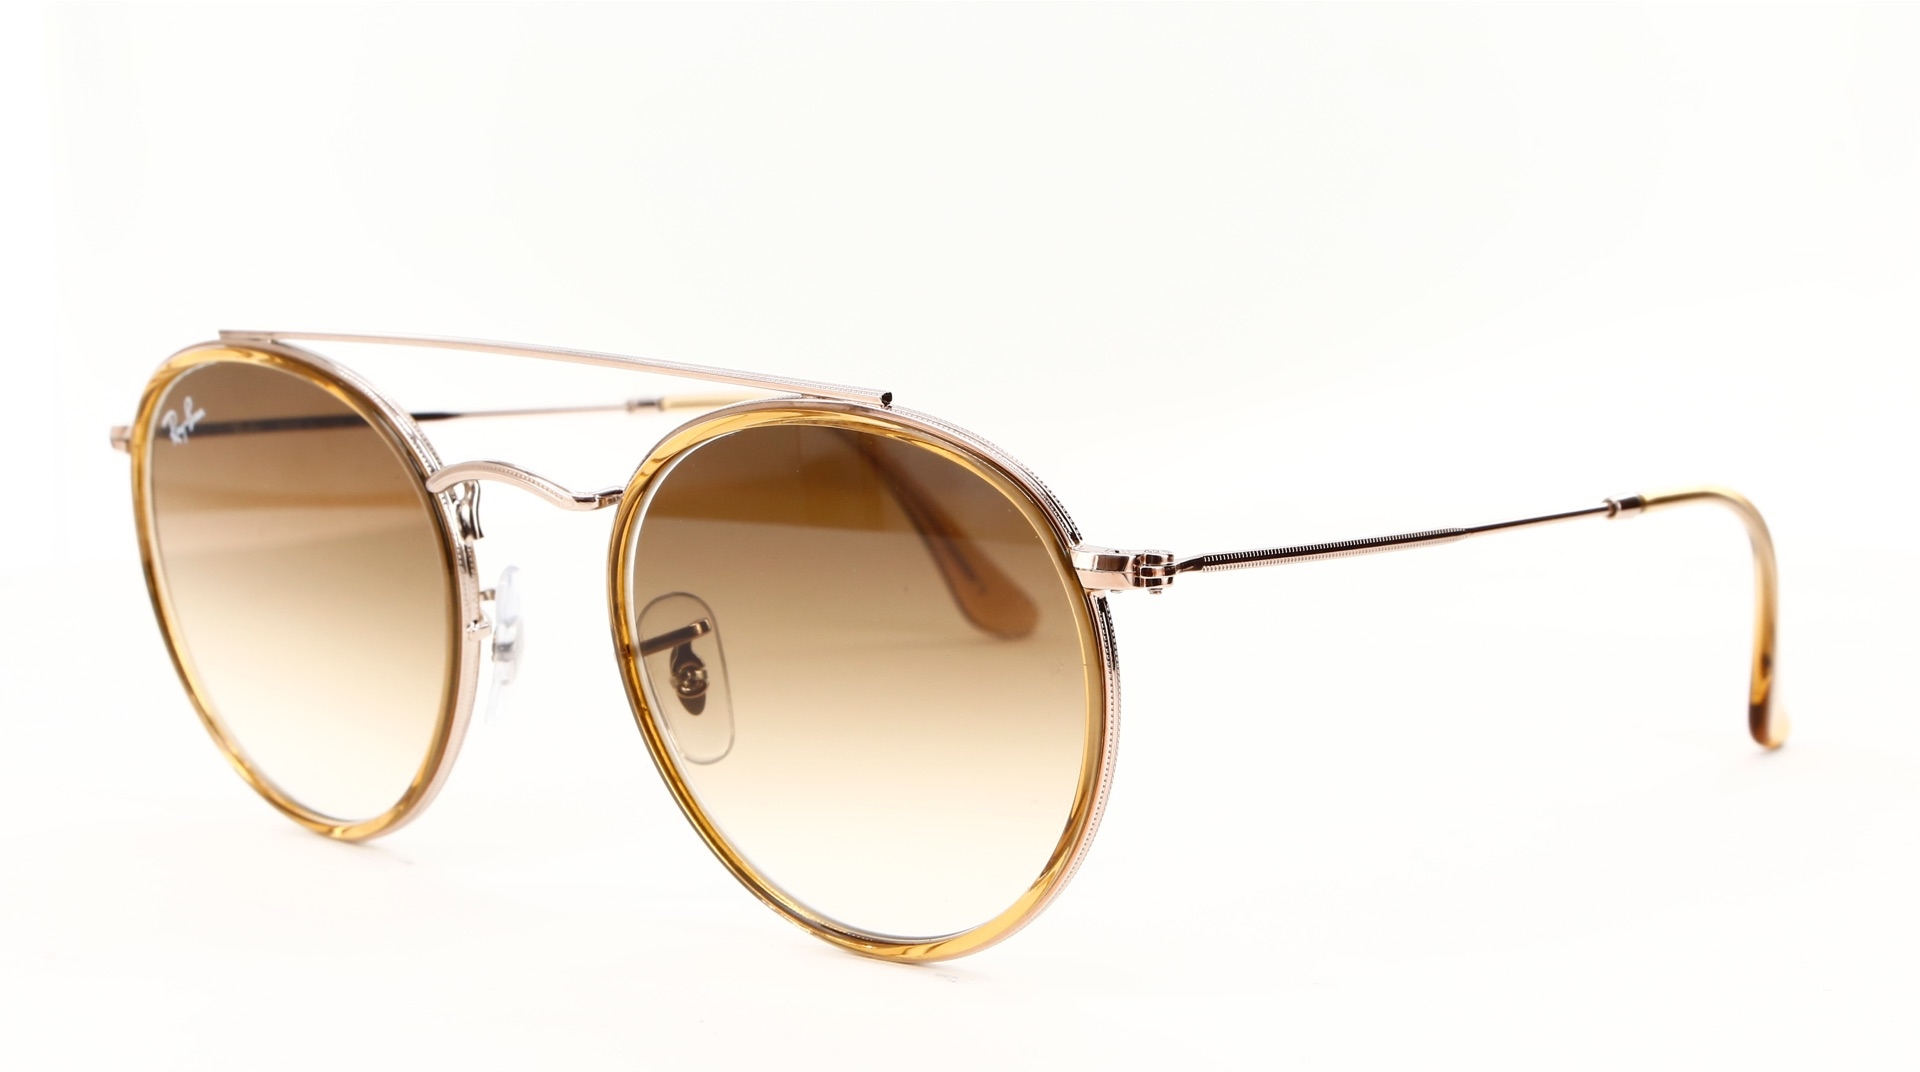 Ray-Ban - ref: 79107